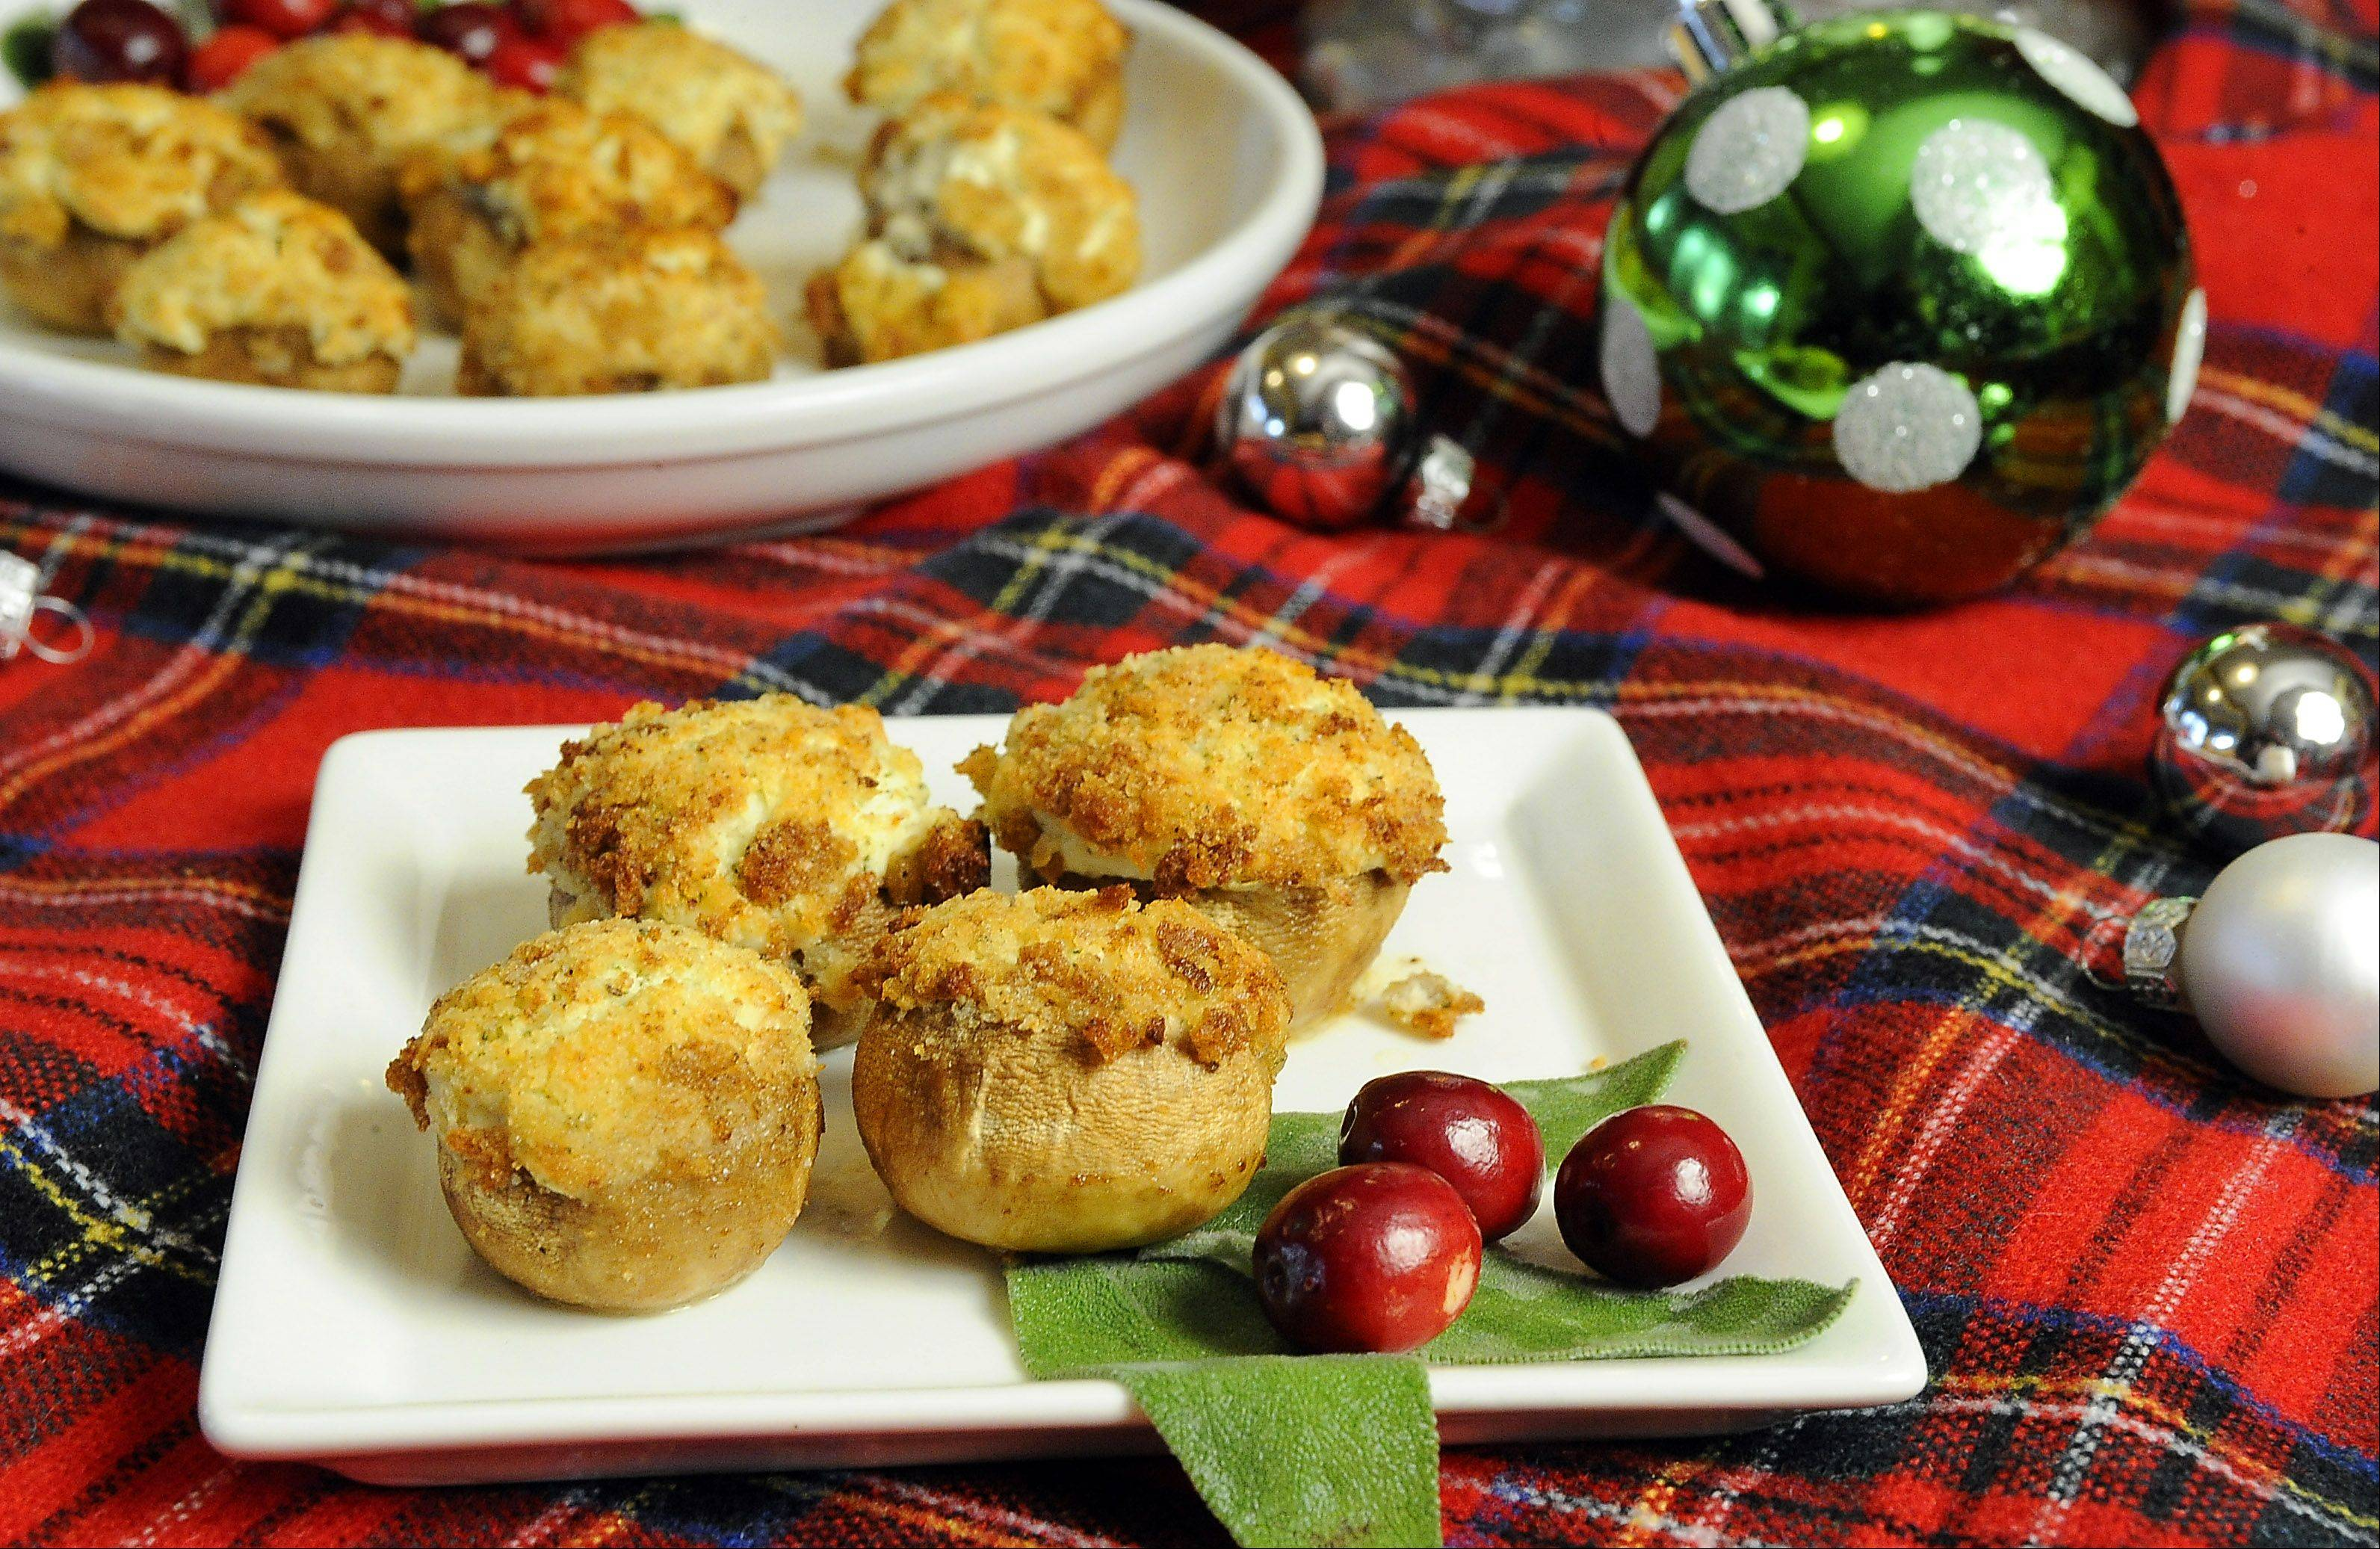 Don't knock 'em till you've tried 'em, says Penny Kazmier of these cheesy stuffed mushrooms. The treasured recipe is a must-have on her holiday appetizer buffet.